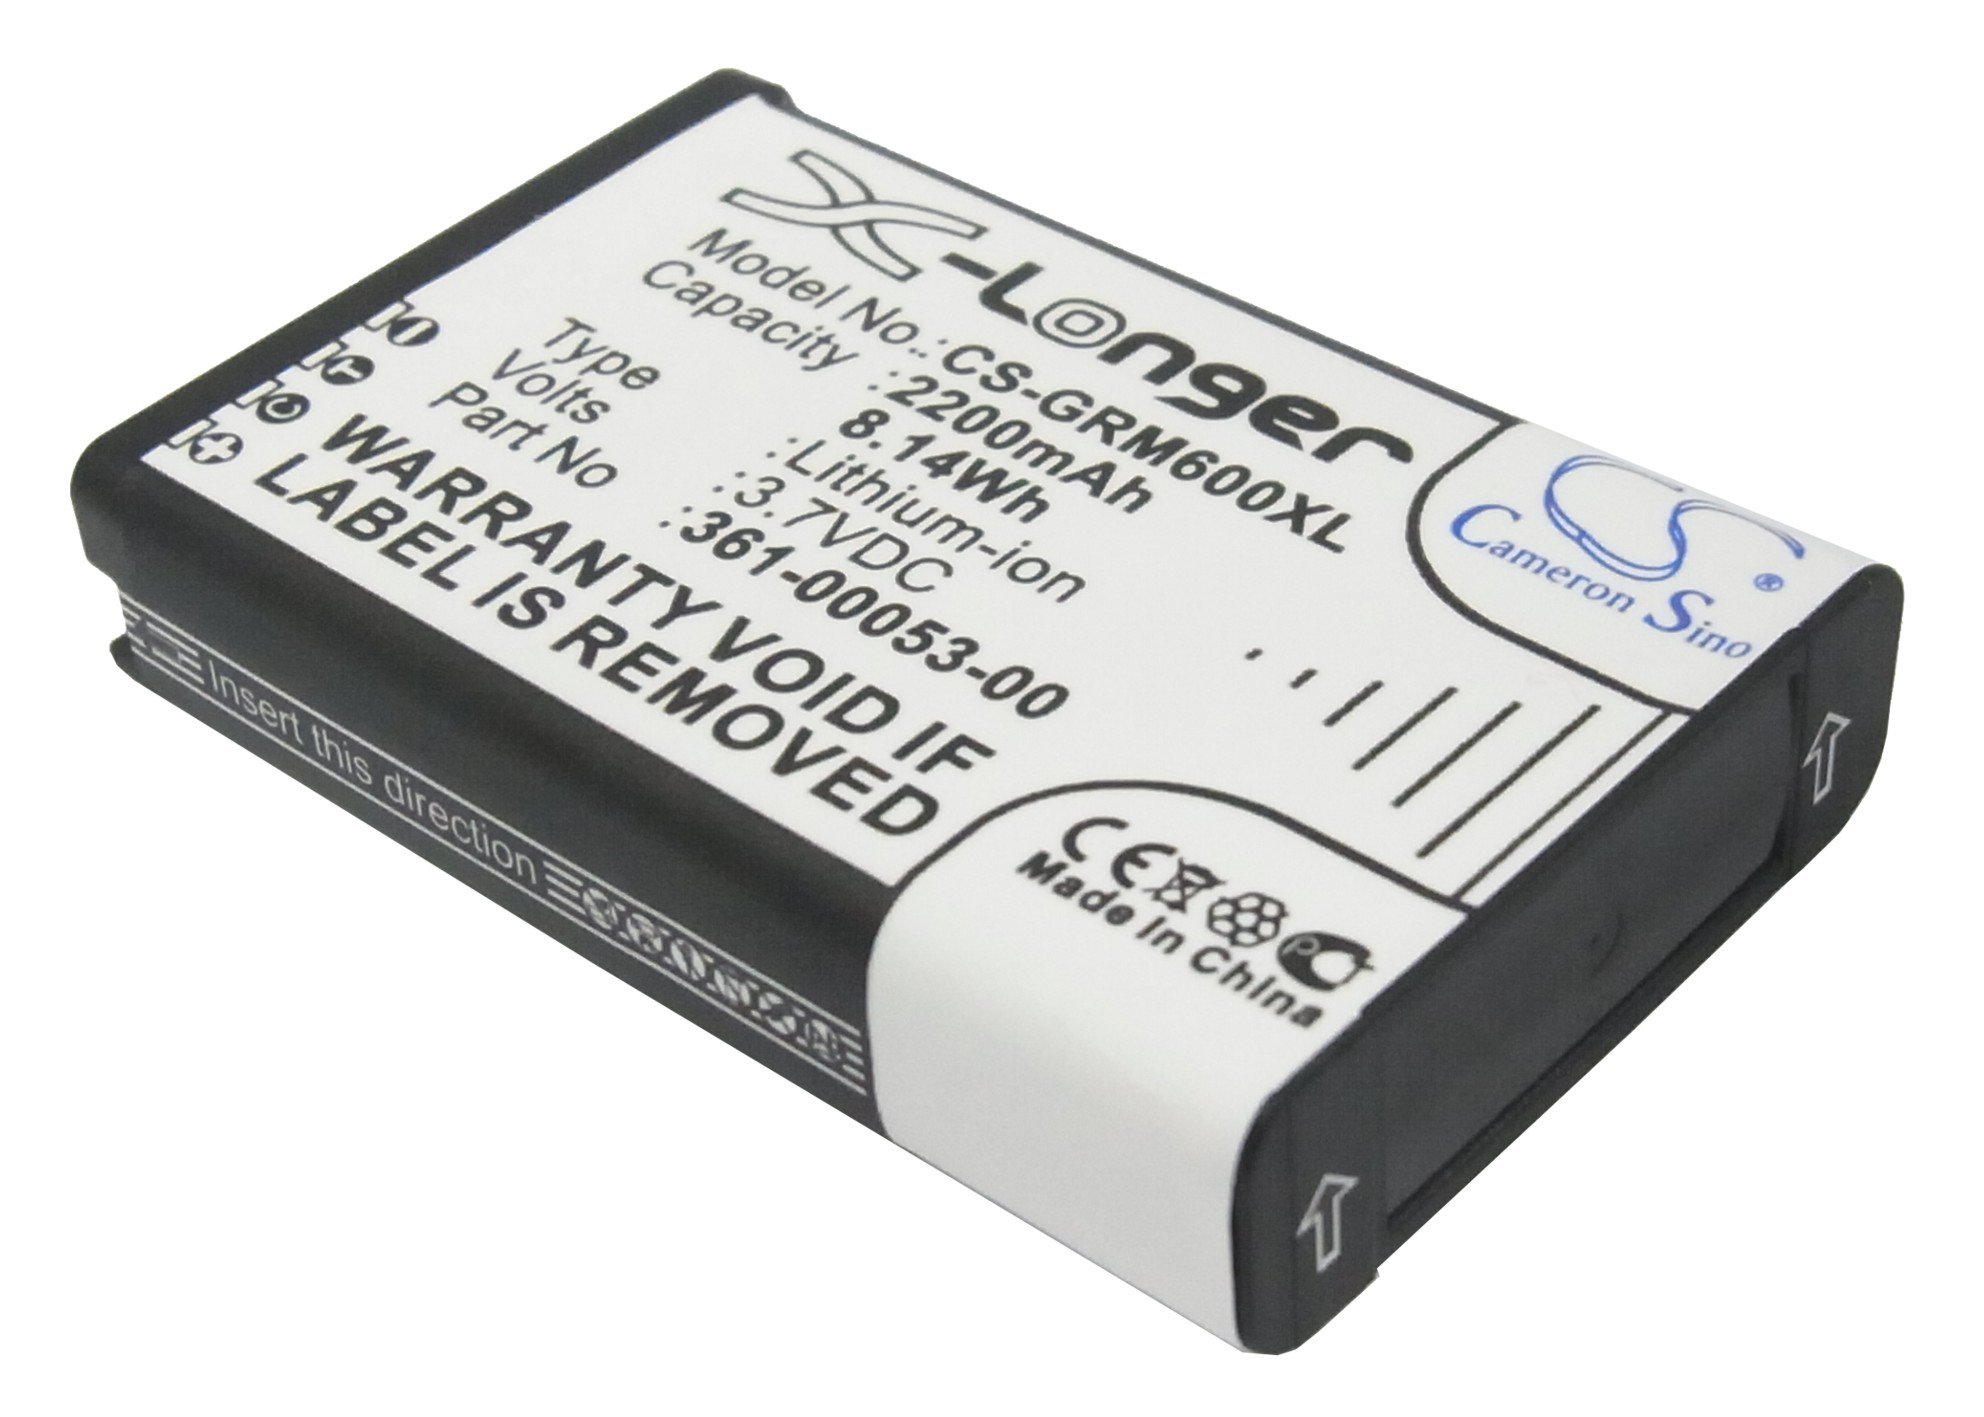 Cameron sino 2200mAh Li-ion Rechargeable Battery 361-00053-00 Replacement For Garmin Montana 600 600T 650 650T,Alpha 100 handheld